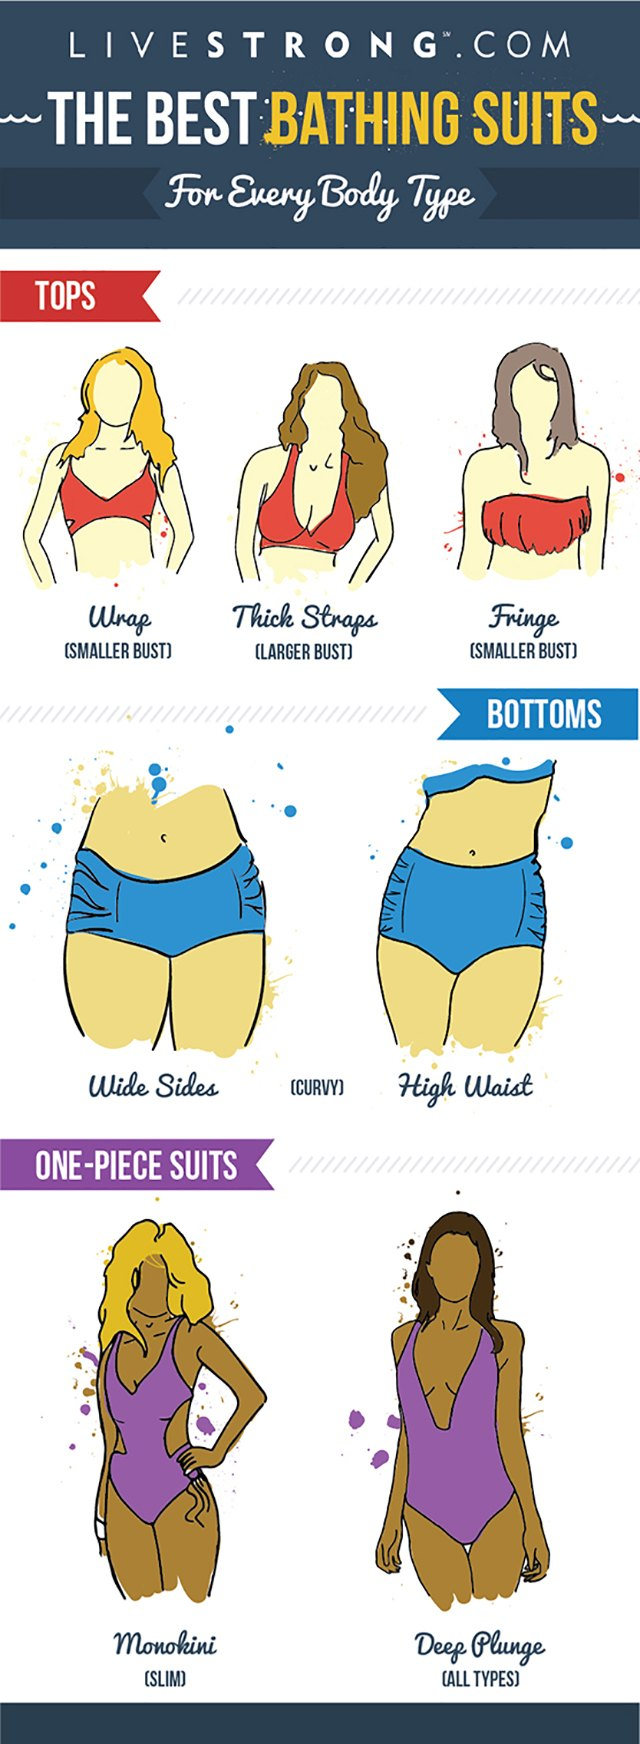 Which bathing suit fits your body type?